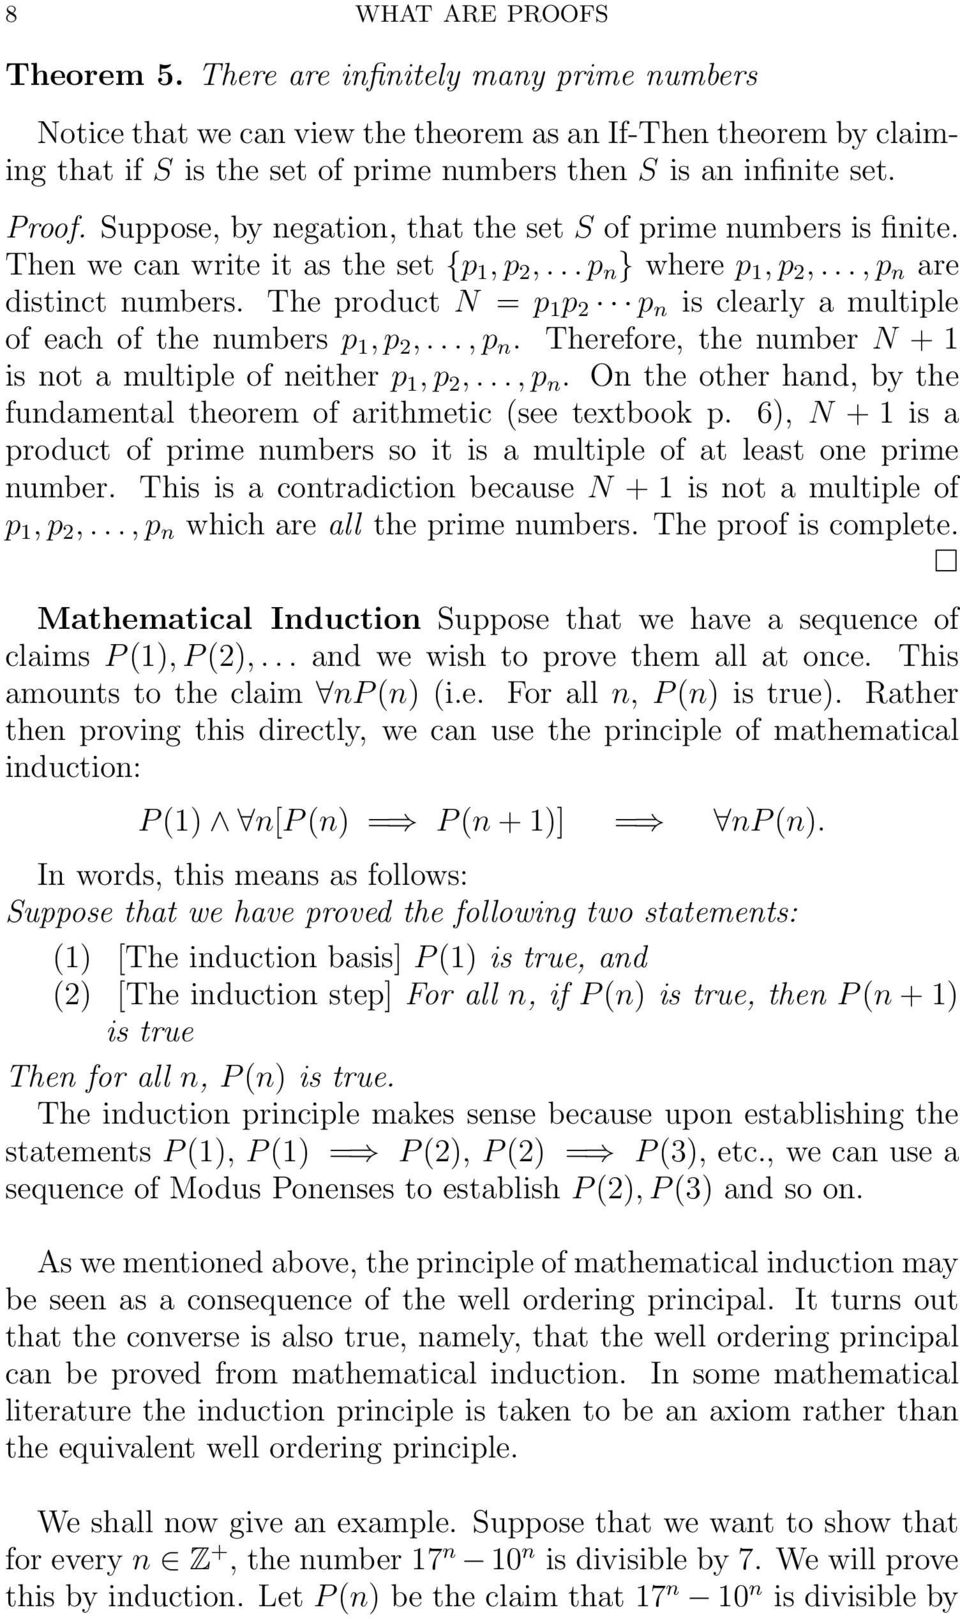 Suppose, by negation, that the set S of prime numbers is finite. Then we can write it as the set {p 1, p 2,... p n } where p 1, p 2,..., p n are distinct numbers.